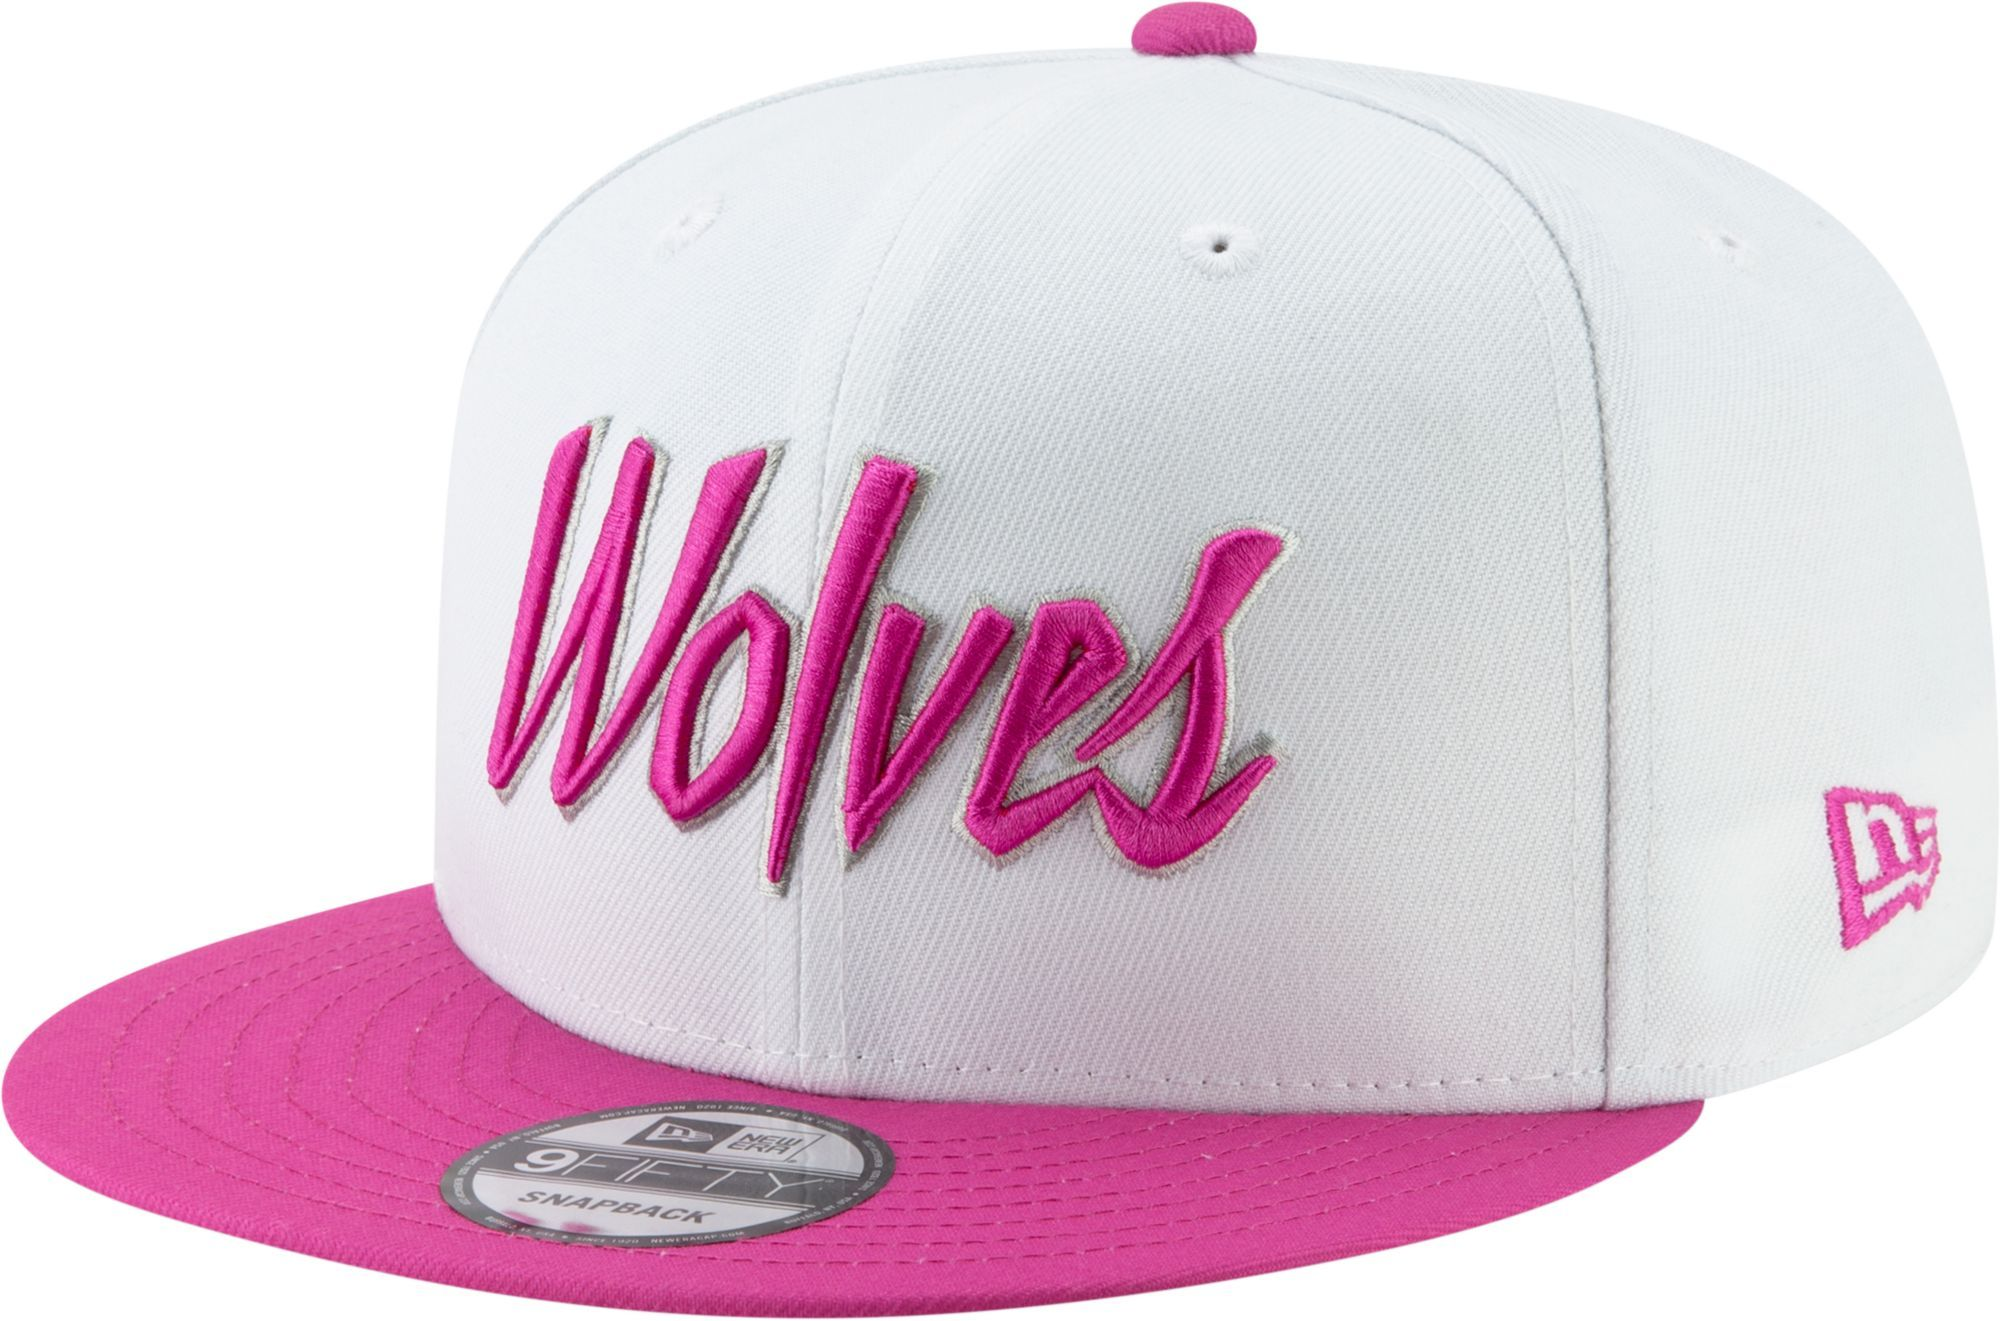 order online shades of another chance New Era Men's Minnesota Timberwolves 9Fifty Earned Edition ...